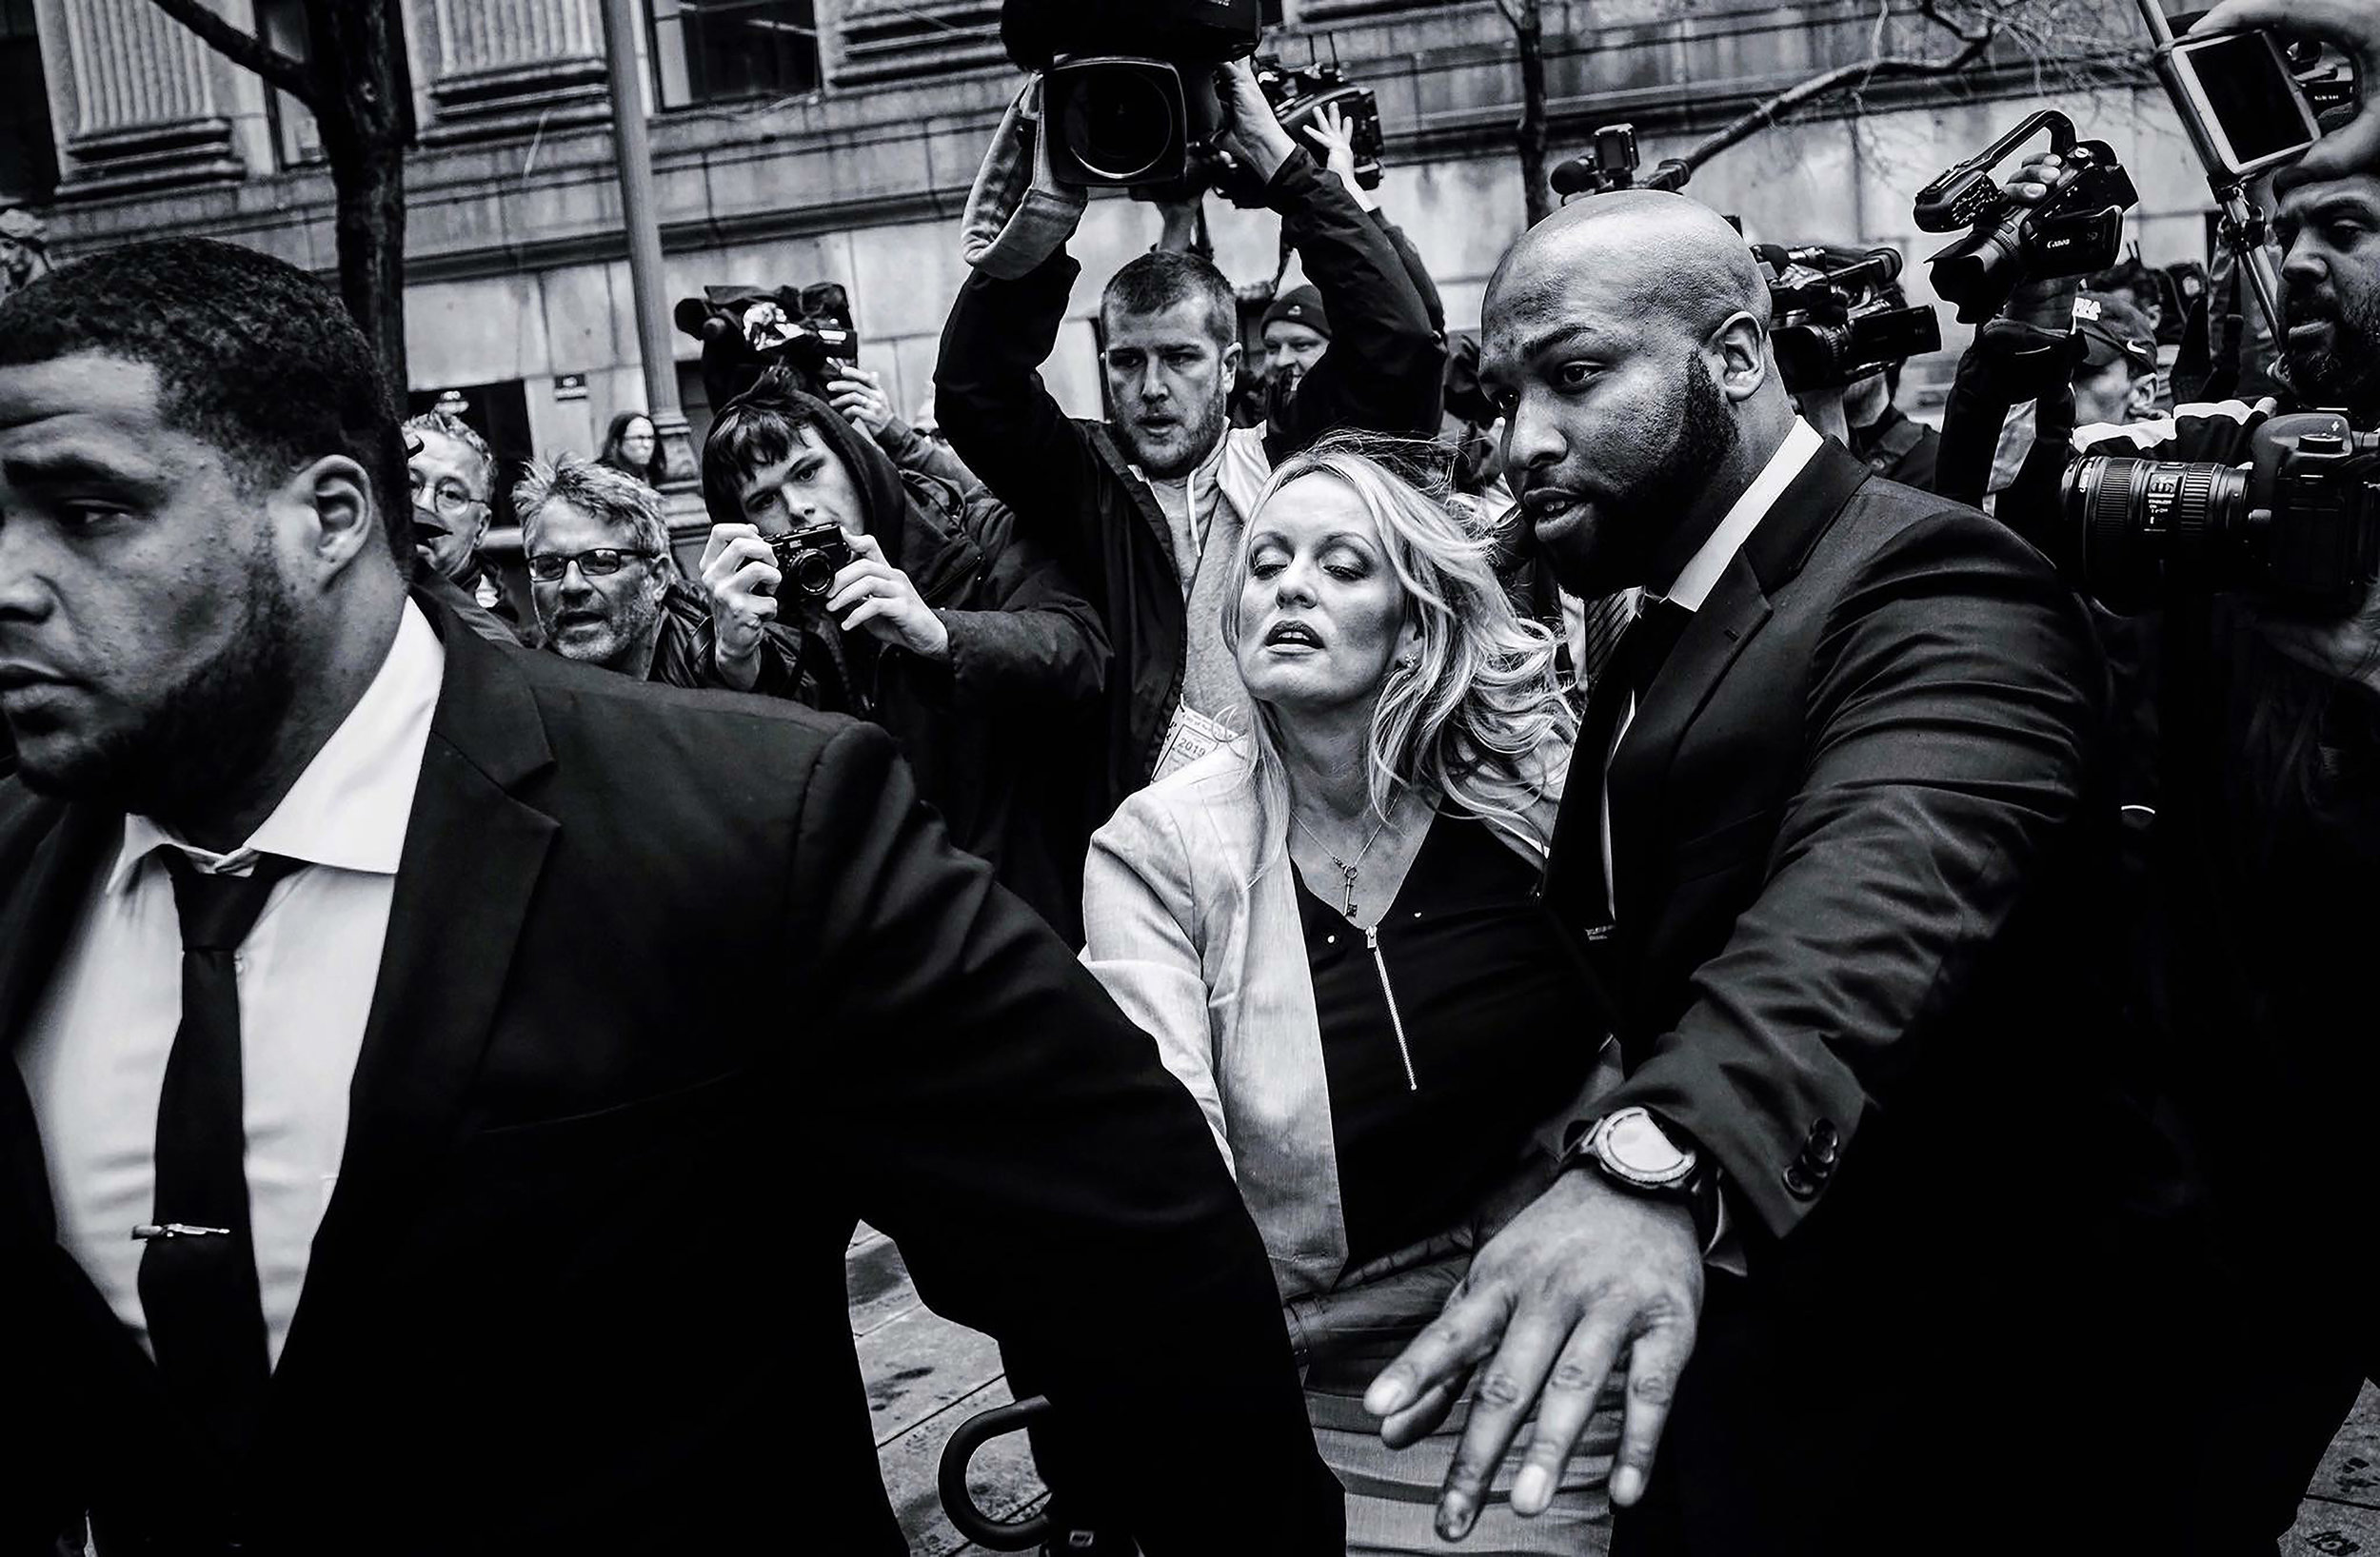 YANA PASKOVA  www.yanapaskova.com  |  @yanapaskova   Adult film actress Stormy Daniels (Stephanie Clifford) arrives to Federal Court with her lawyer Michael Avenatti (not seen) at the United States District Court Southern District of New York after a hearing related to Michael Cohen, President Trump's longtime personal attorney and confidante, on April 16, 2018 in New York City. Cohen and lawyers representing President Trump are asking the court to block Justice Department officials from reading documents and materials related to his Cohen's relationship with President Trump that they believe should be protected by attorney-client privilege. Officials with the FBI, armed with a search warrant, raided Cohen's office and two private residences last week.